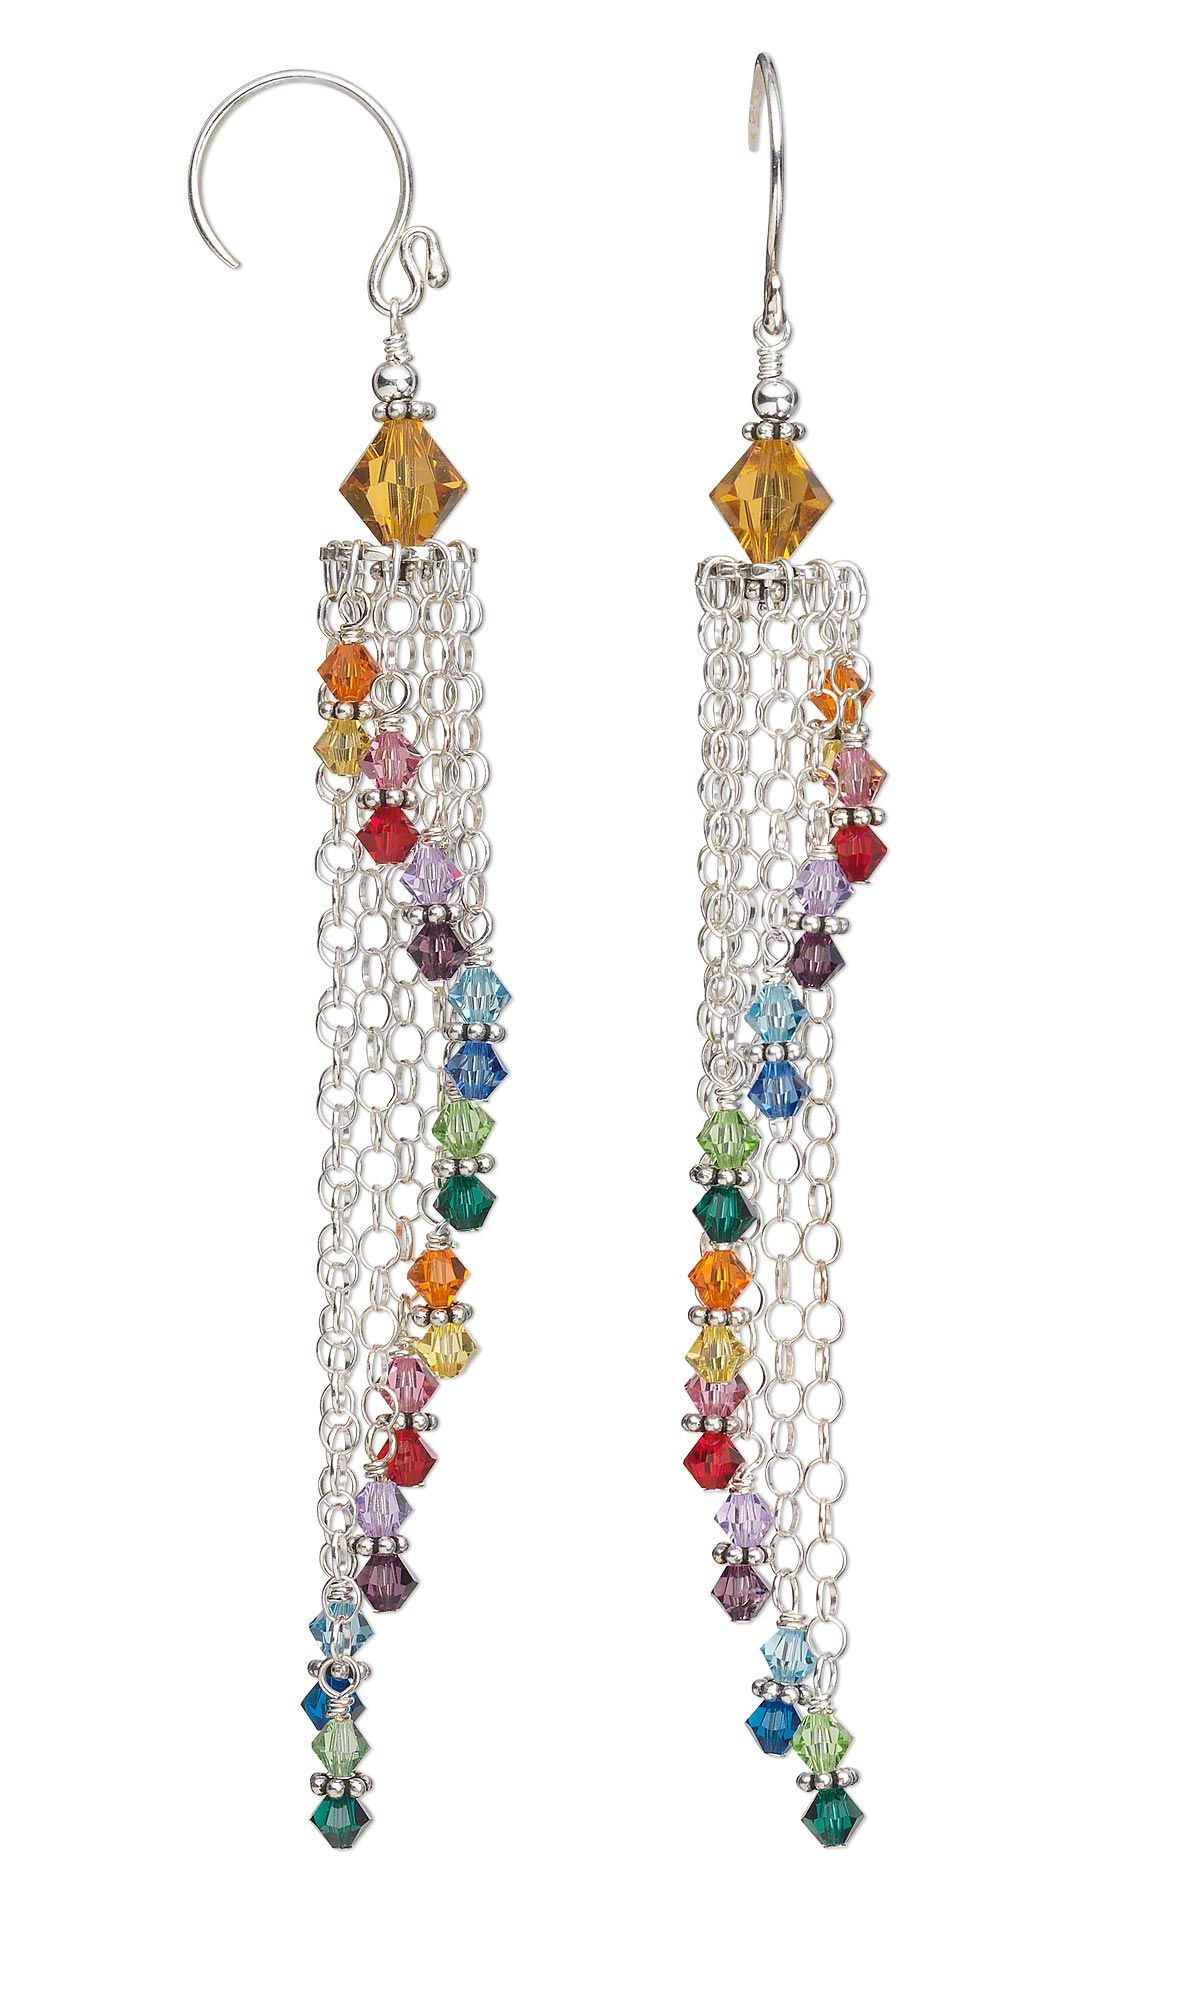 Jewelry Design Earrings With Swarovski Crystal Beads And Sterling Silver Chain Fire Mountain Gems